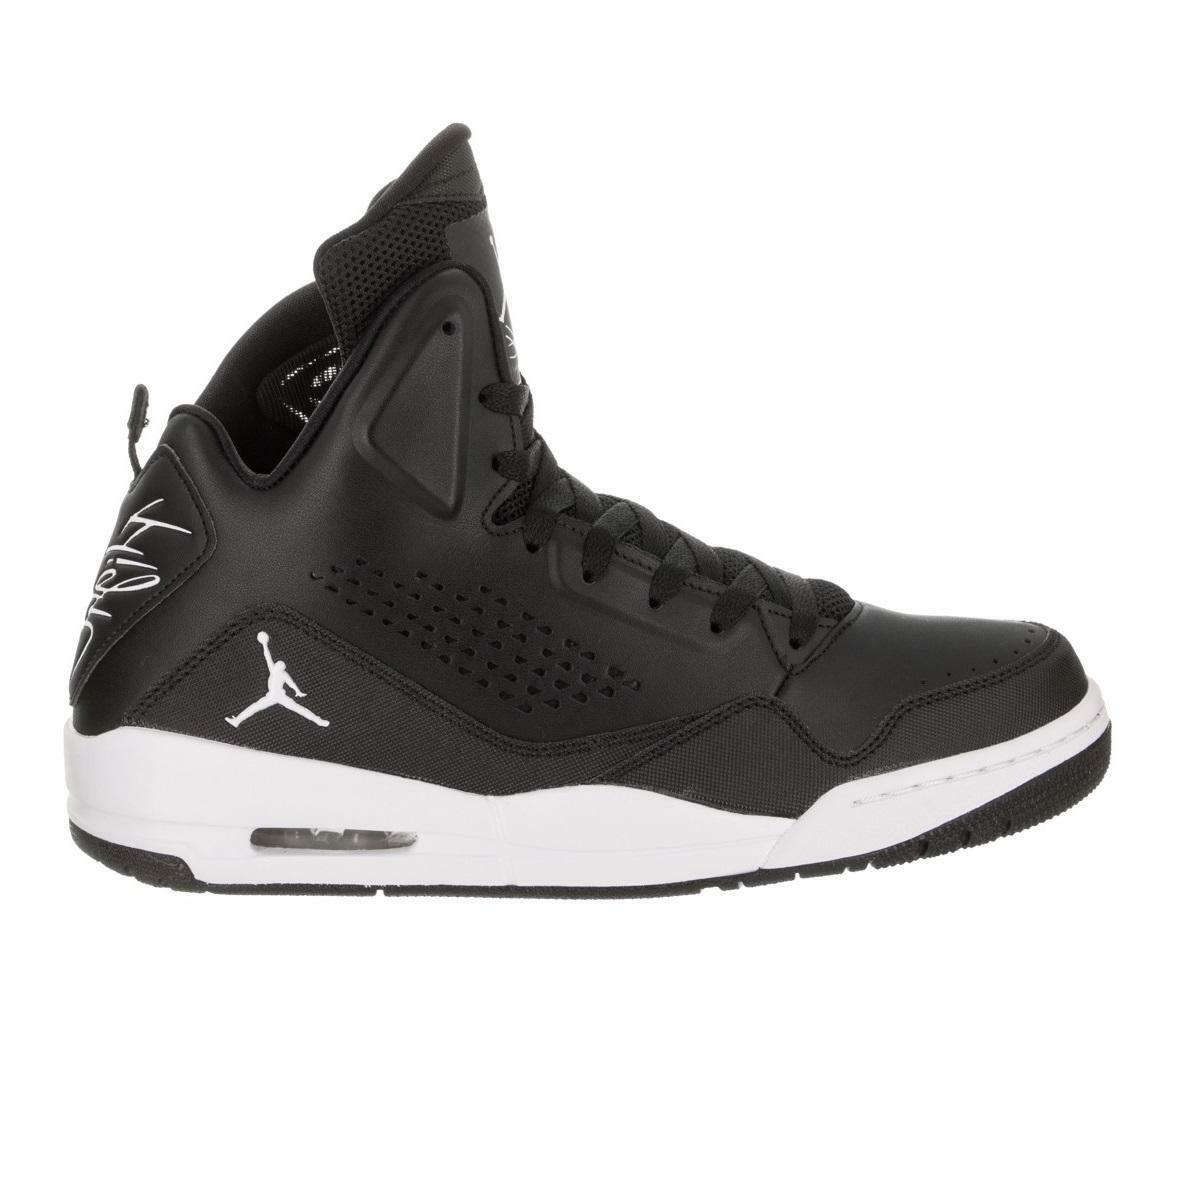 Mens NIKE JORDAN SC 3 Black Basketball Trainers 629877 008